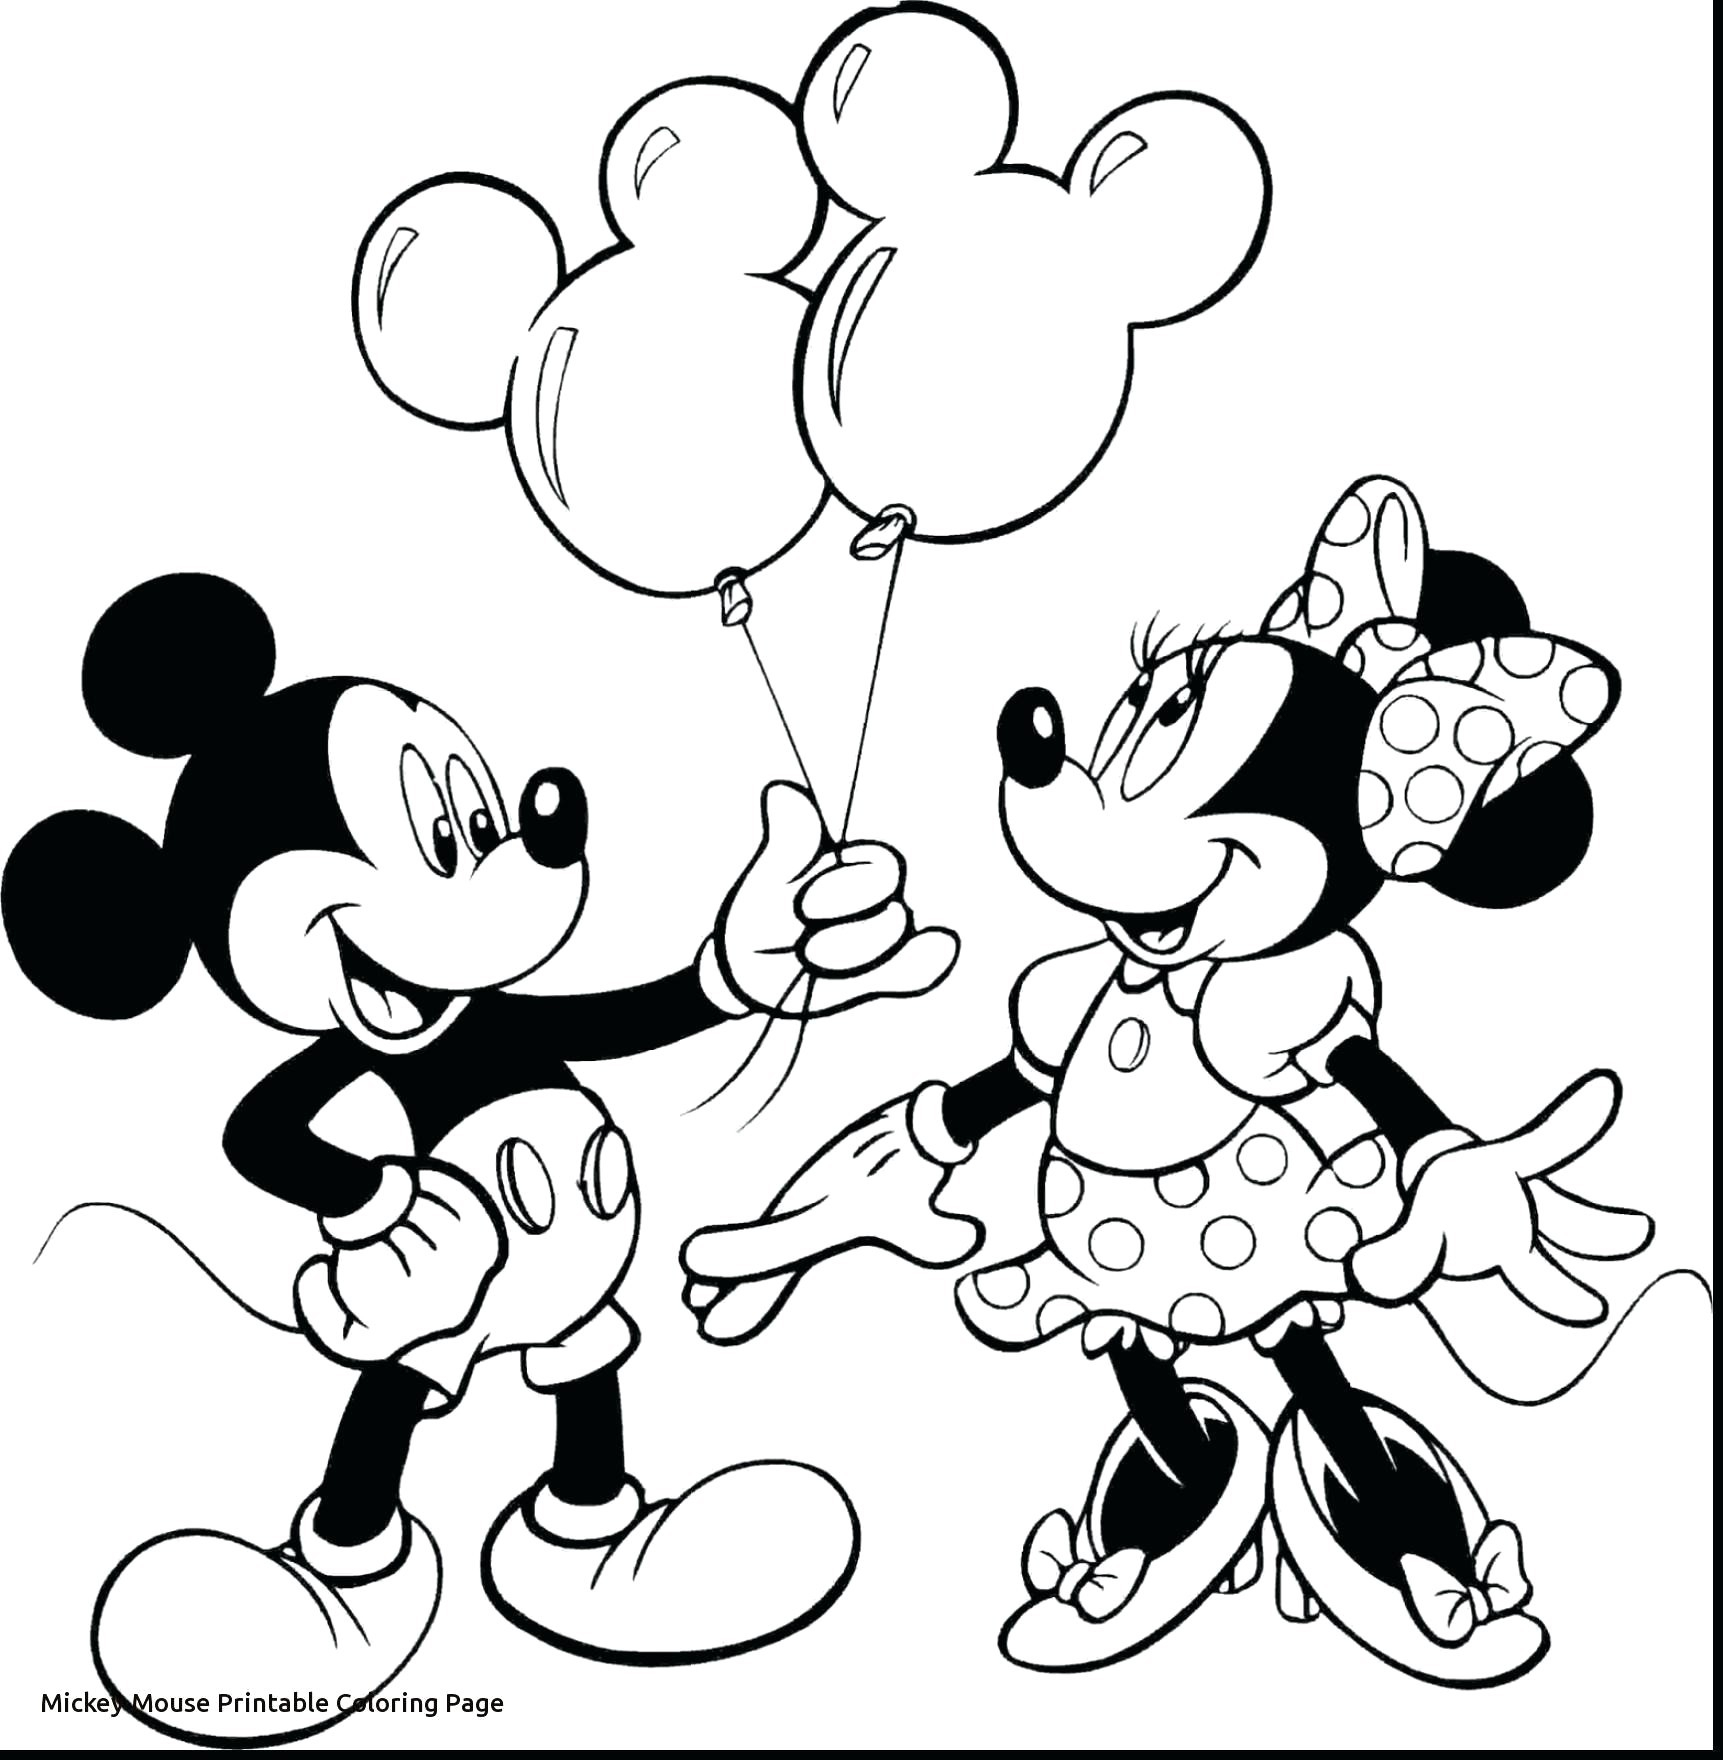 Free Minnie Mouse Coloring Pages | Scagraduatecouncil - Free Printable Minnie Mouse Coloring Pages